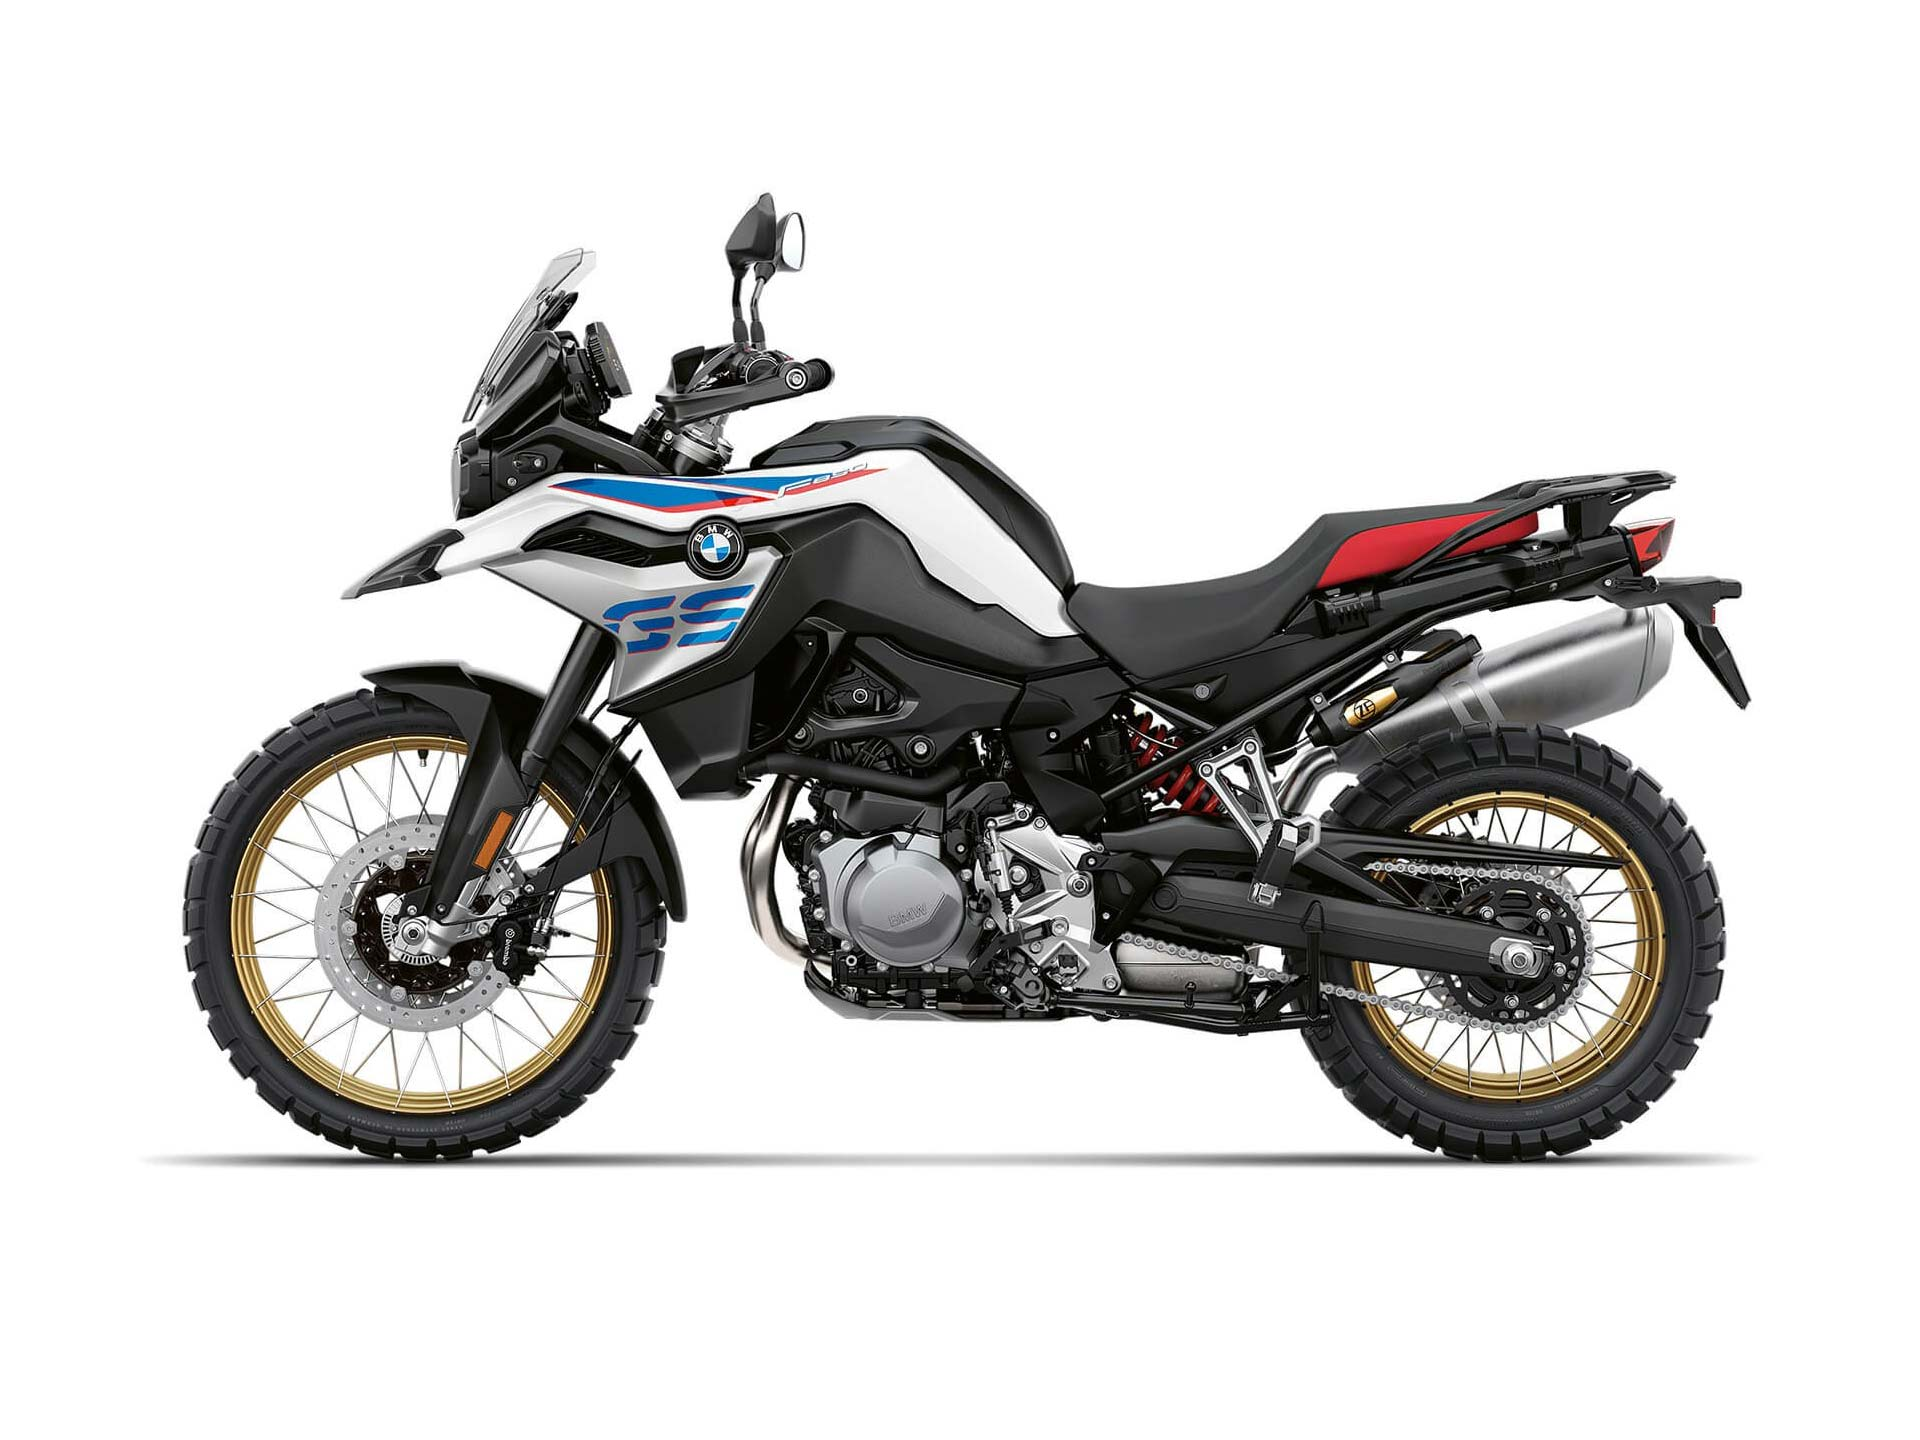 f 850 gs rallye x townsville bmw motorcycles. Black Bedroom Furniture Sets. Home Design Ideas